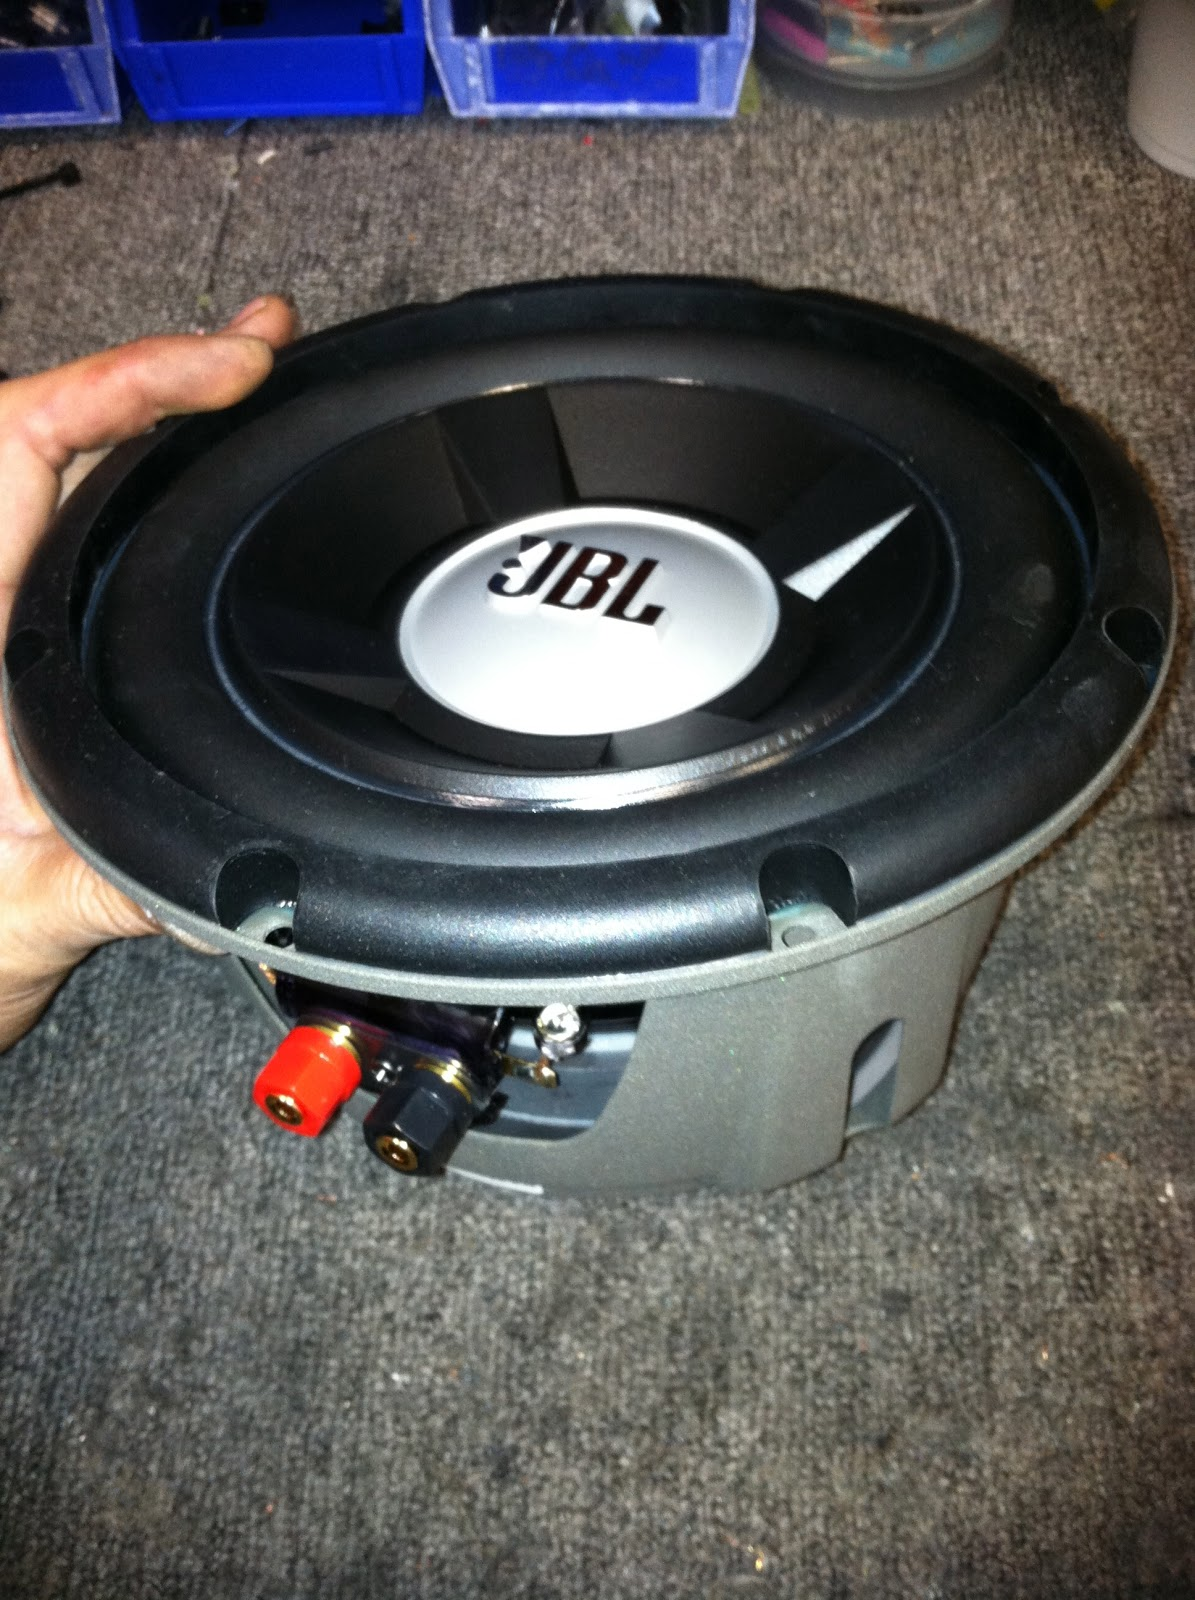 bose 8 inch subwoofer. car audio tips tricks and how to\u0027s : 2000-2006 chevy tahoe factory sub upgrade, jbl 8 inch. bose inch subwoofer